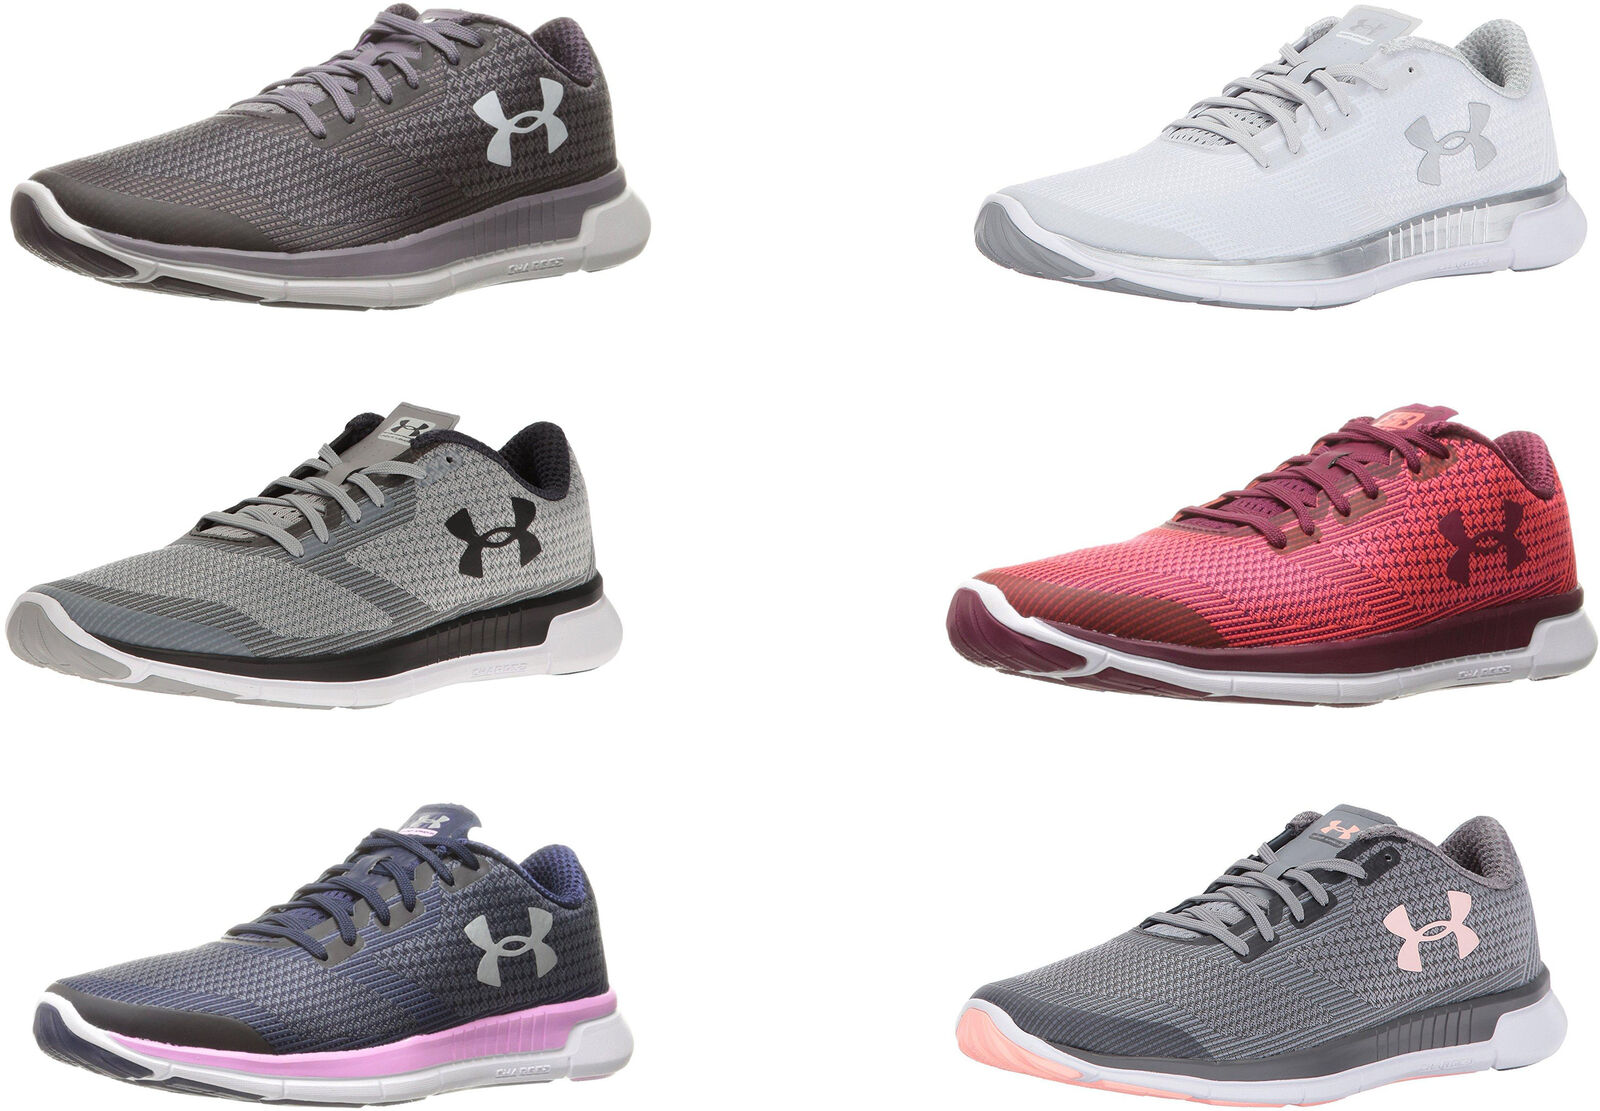 Under Armour Women's Charged Lightning Shoes, 6 Colors